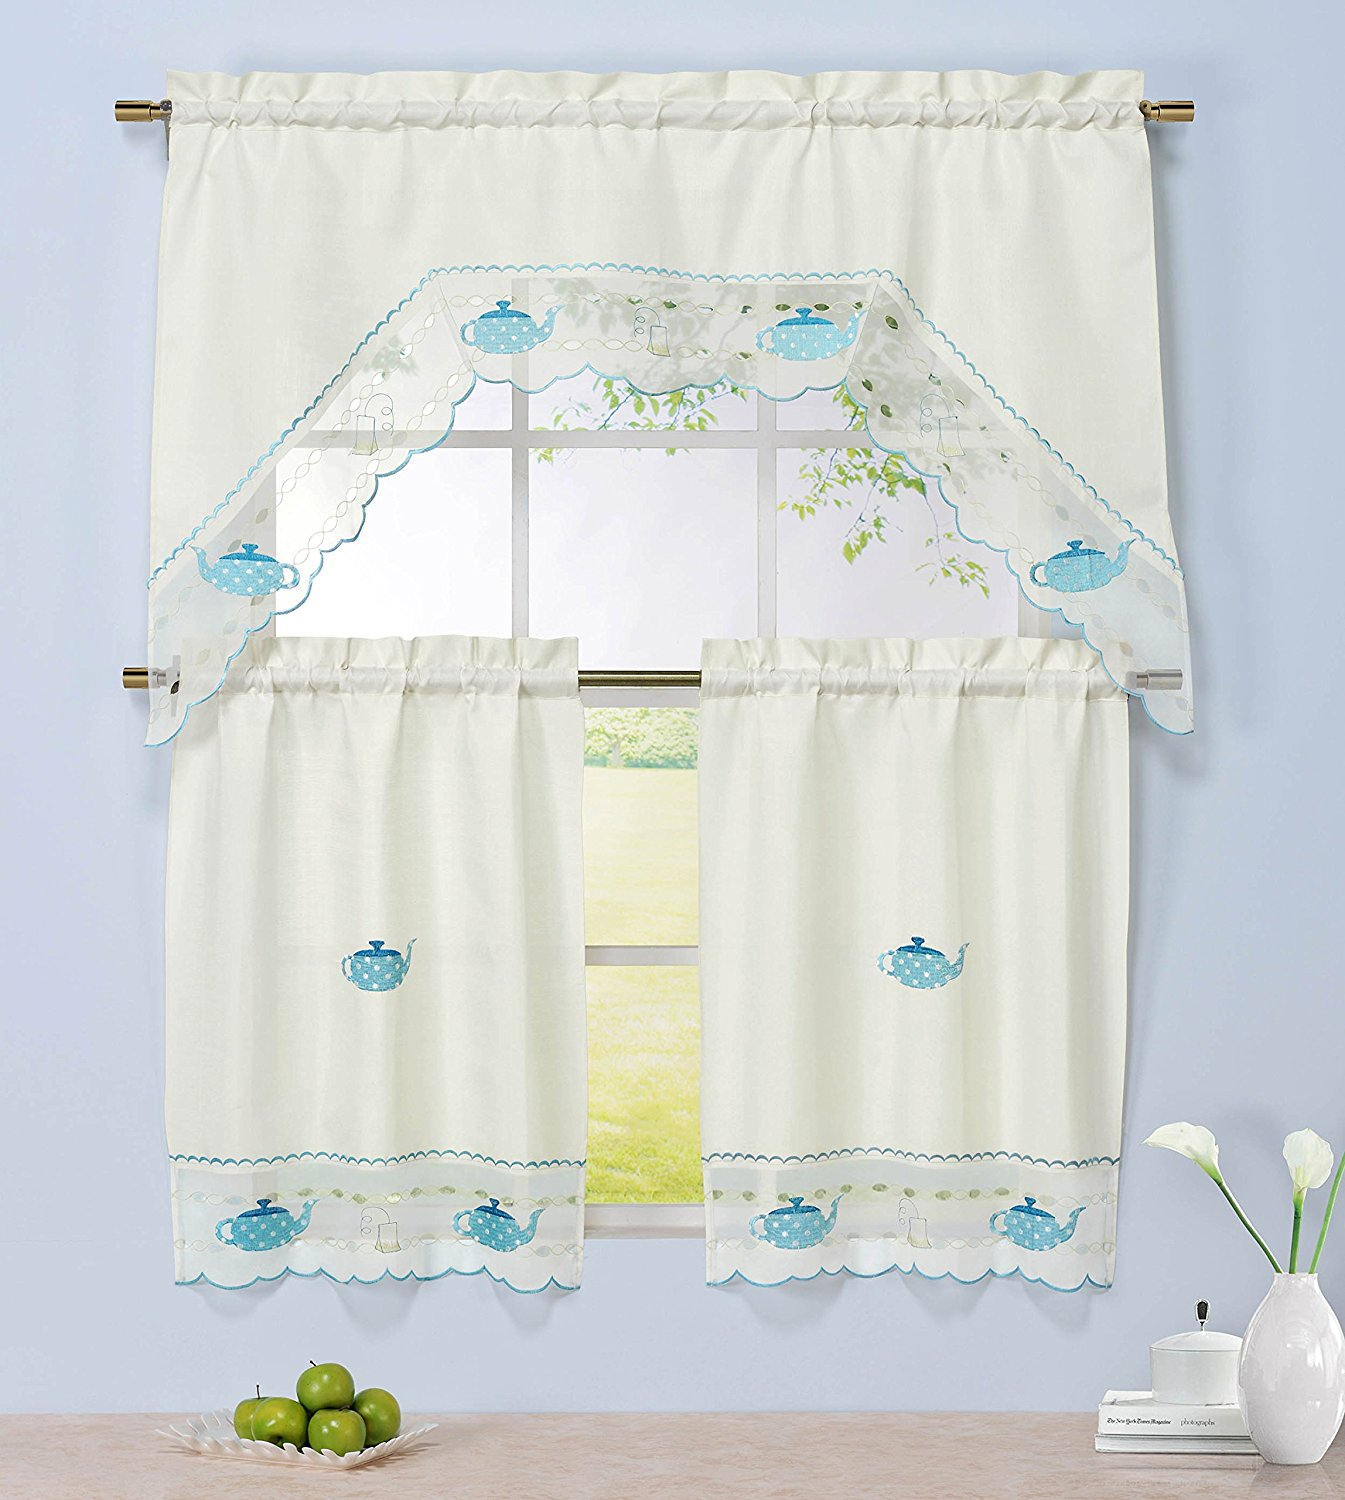 Window Elements Embroidered 3-Piece Kitchen Tier and Valance 60 x 72 Set with Scalloped Border, Tea Party